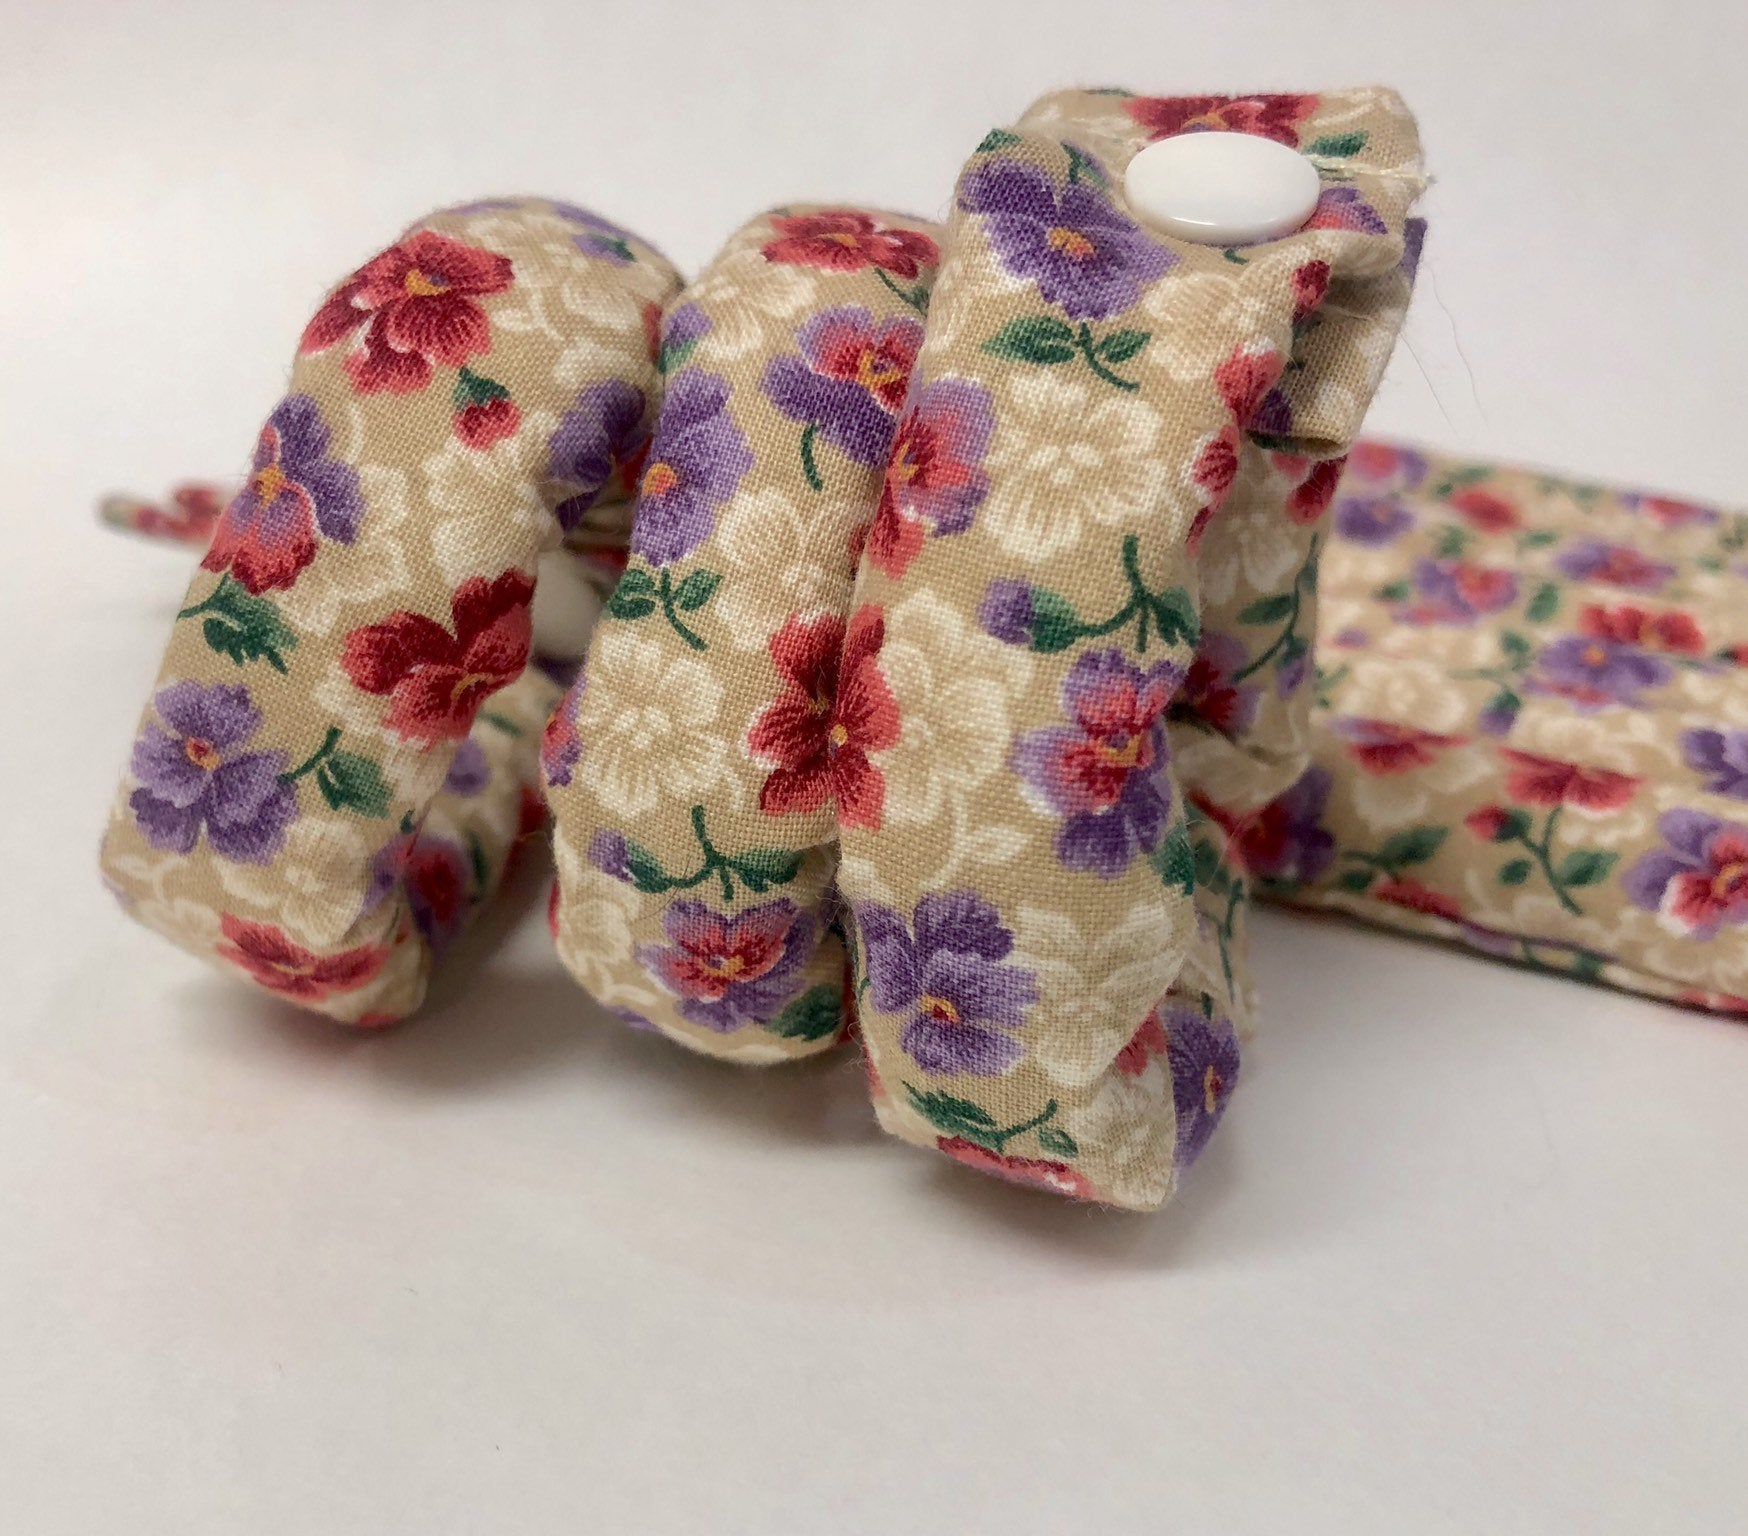 Pansy Floral Hair Rollers / Hair Accessories/Soft Hair Curlers/Hair Updo Tools - My Easy Curls